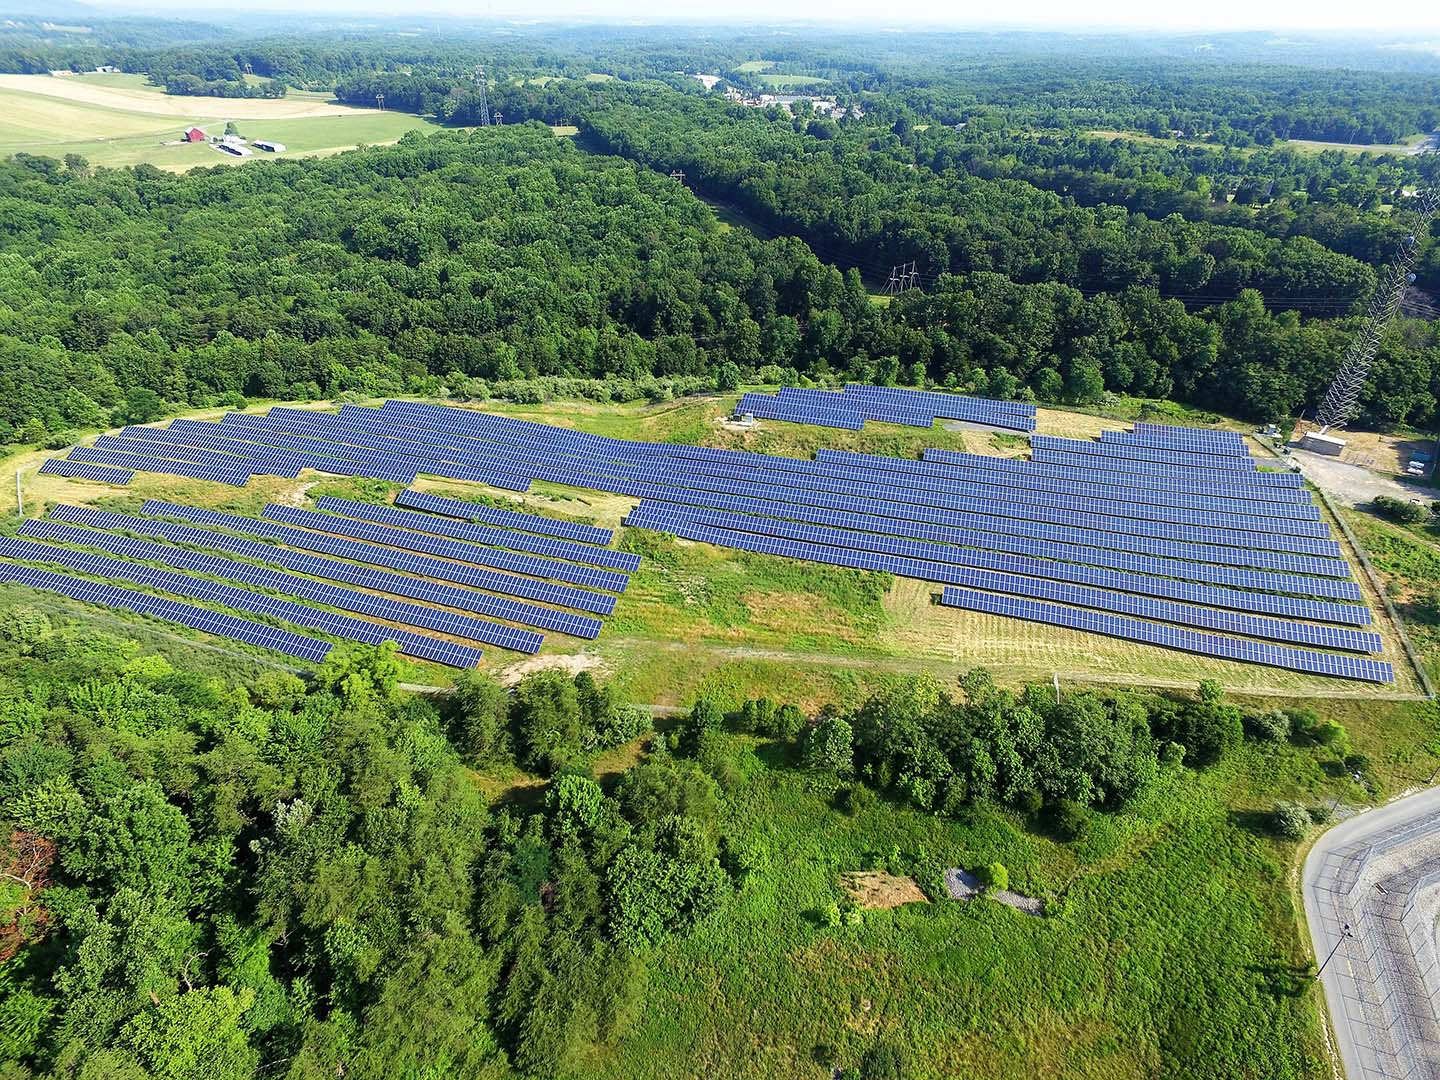 Montgomery County Correctional Facility Ground Solar Panels Overview